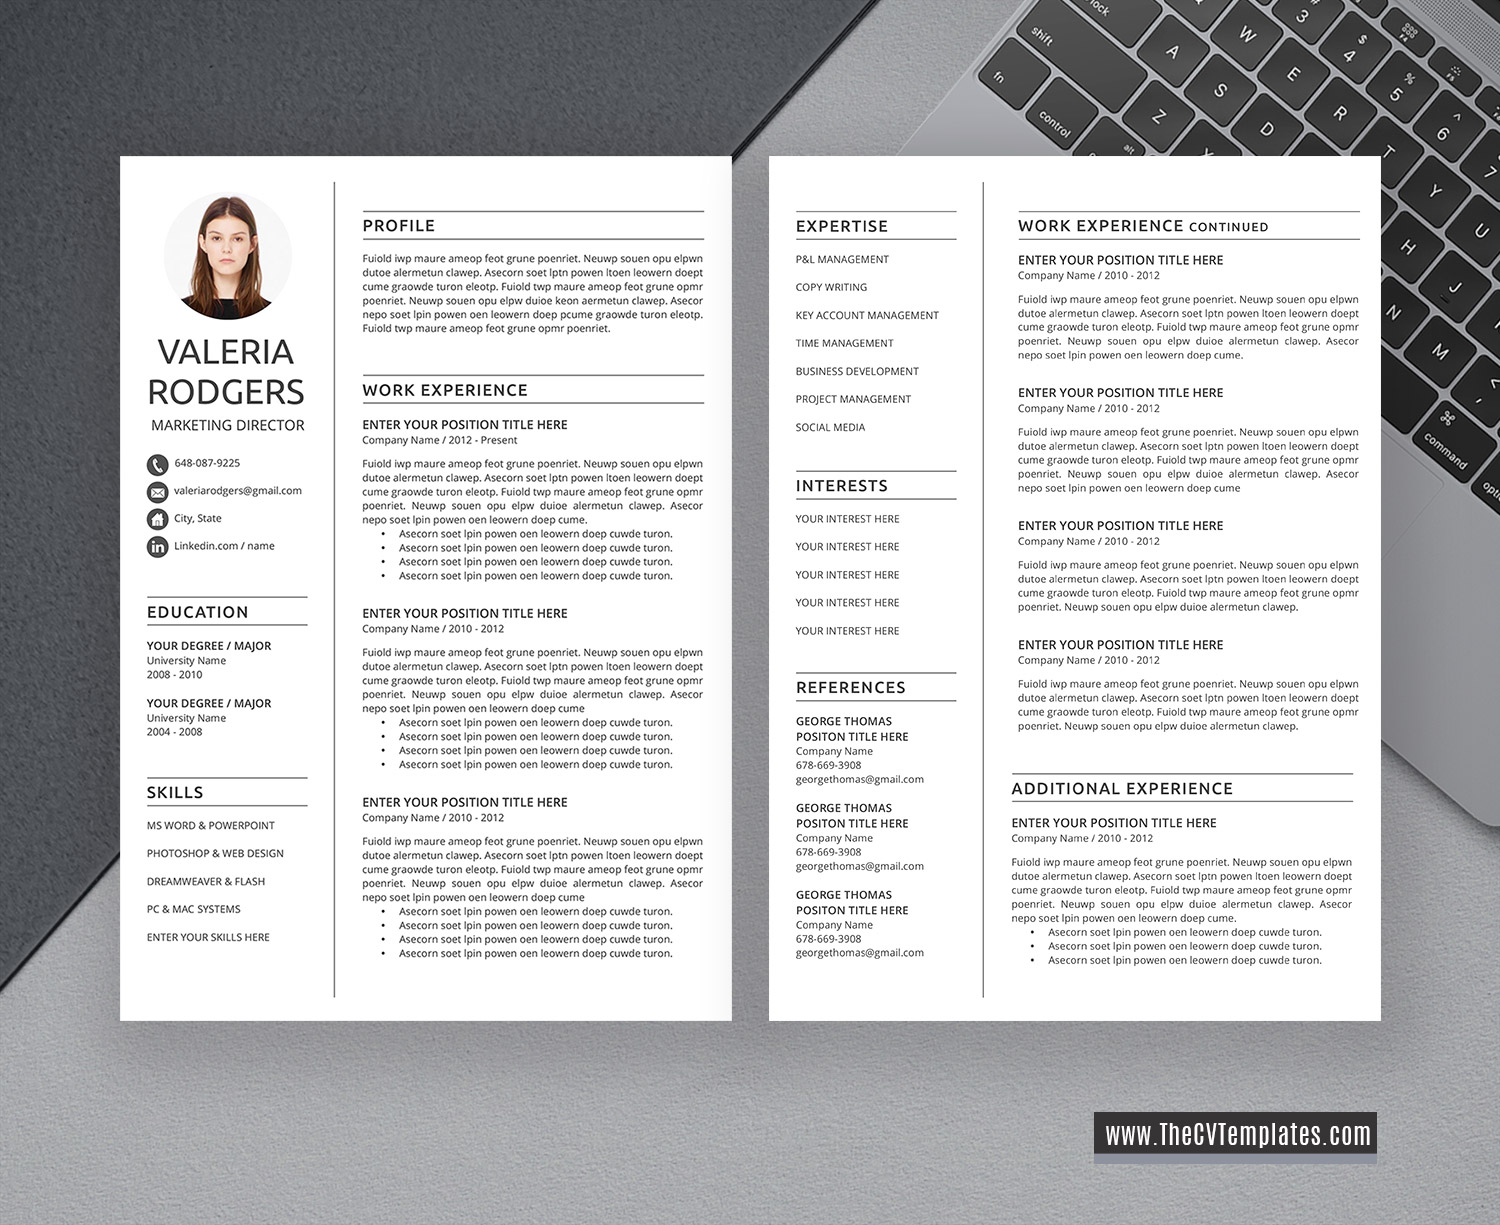 2020 cv template for ms word  professional  u0026 modern cv template  cover letter  references  1